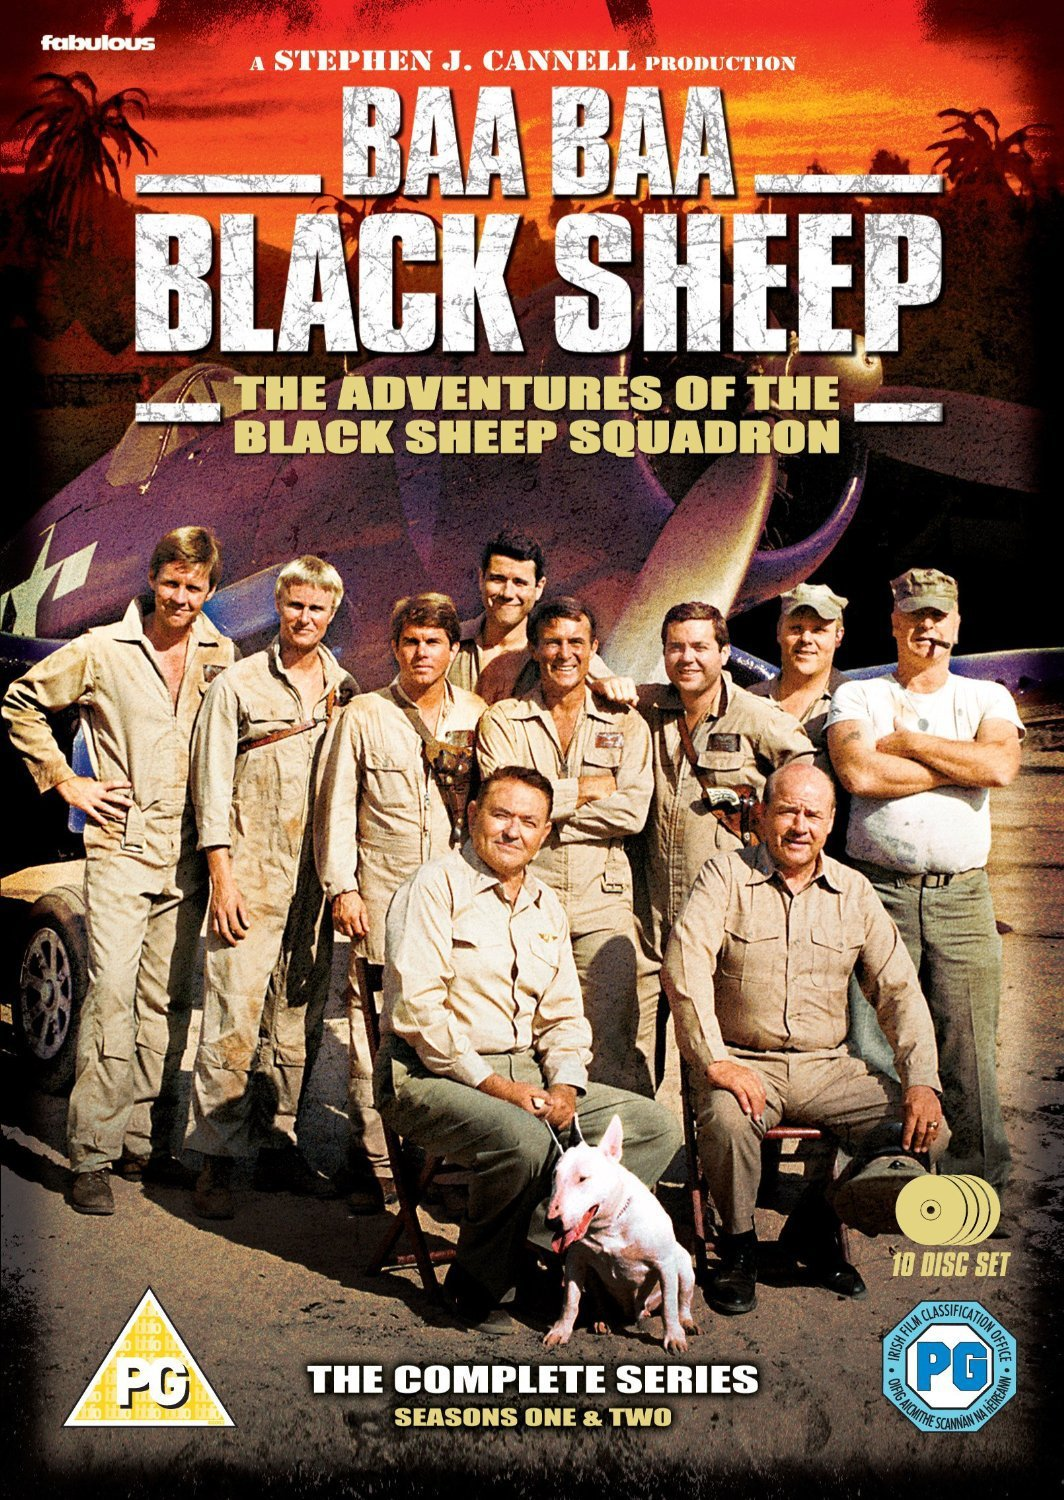 Nude pictures of black sheep squadron fucking